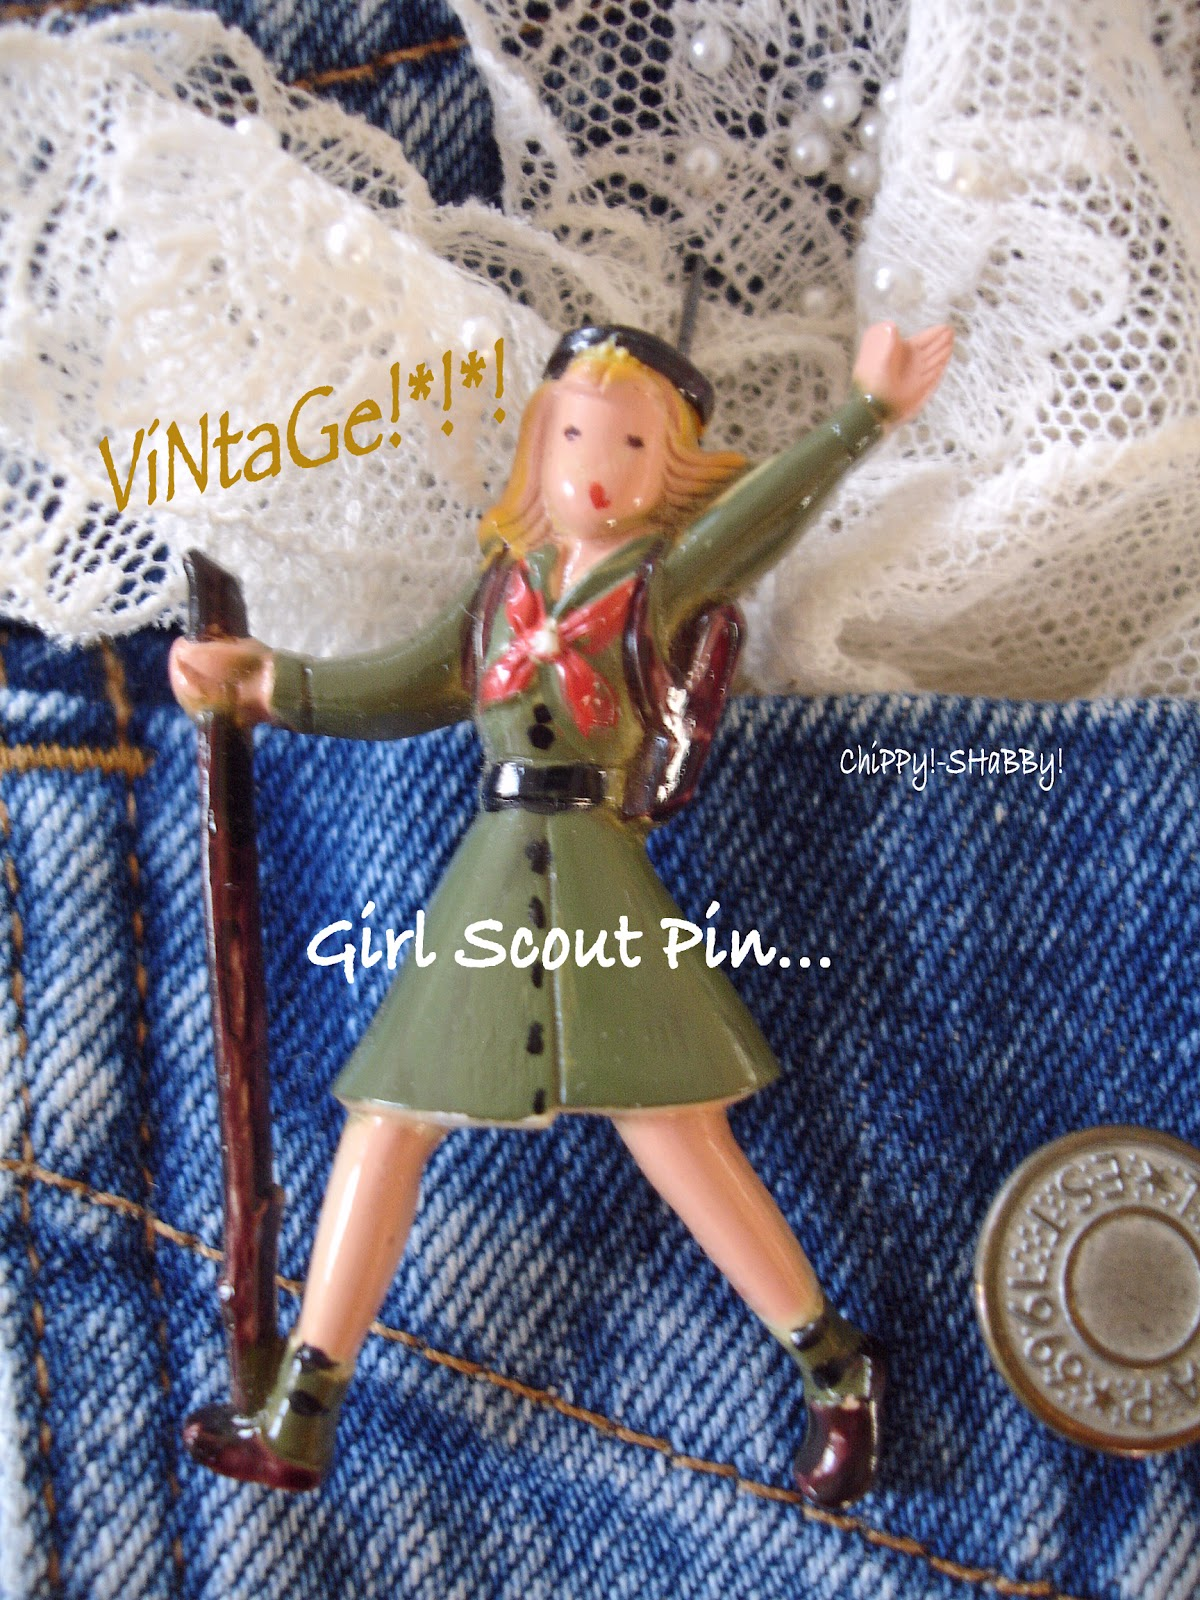 Girl Scout Cookie Nail Art: SHaBBy!: ViNtaGe **Girl Scout Pin/Brooch**